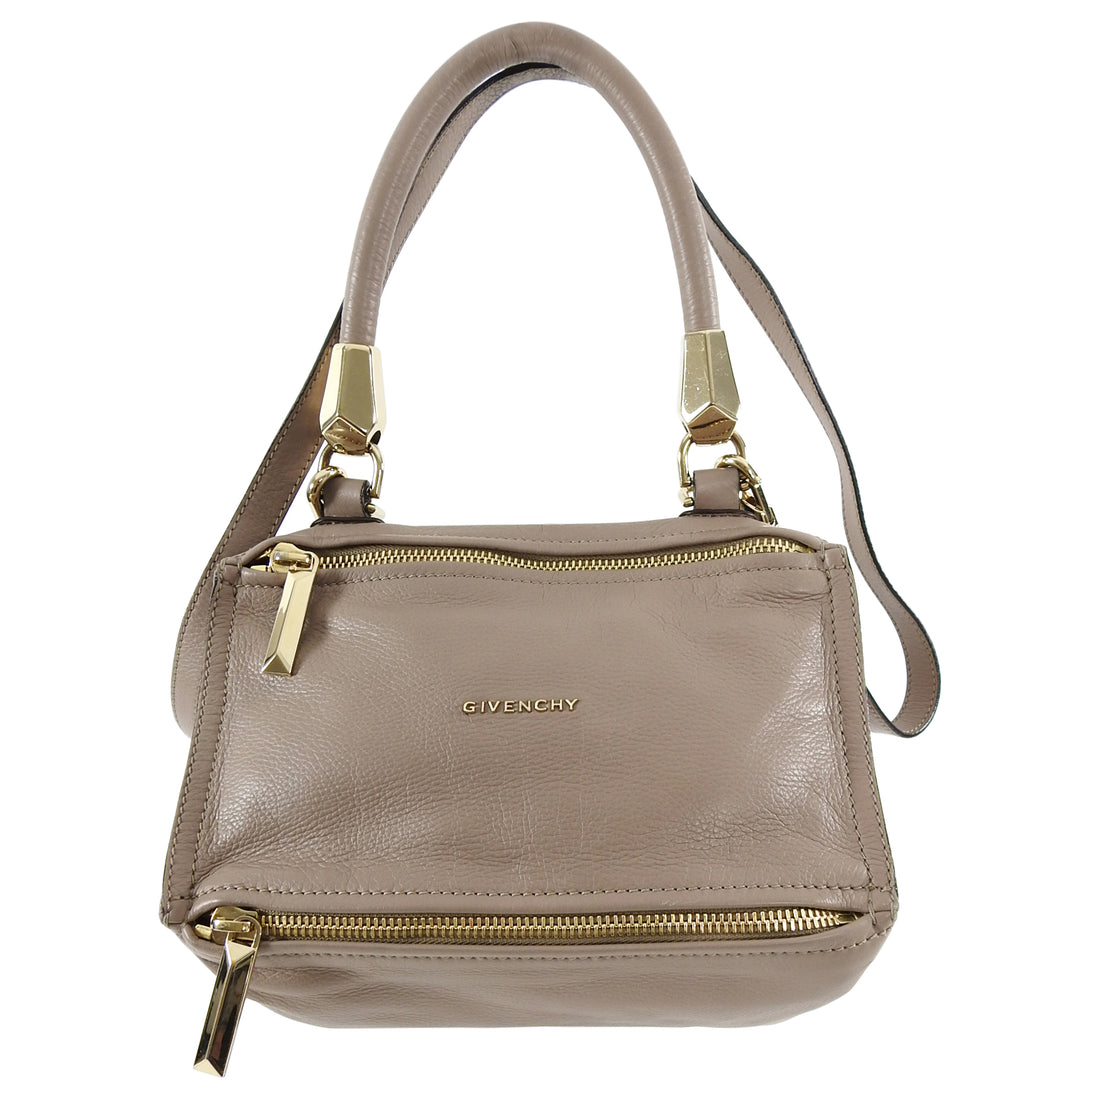 Givenchy Light Taupe / Beige Leather Small Pandora Bag